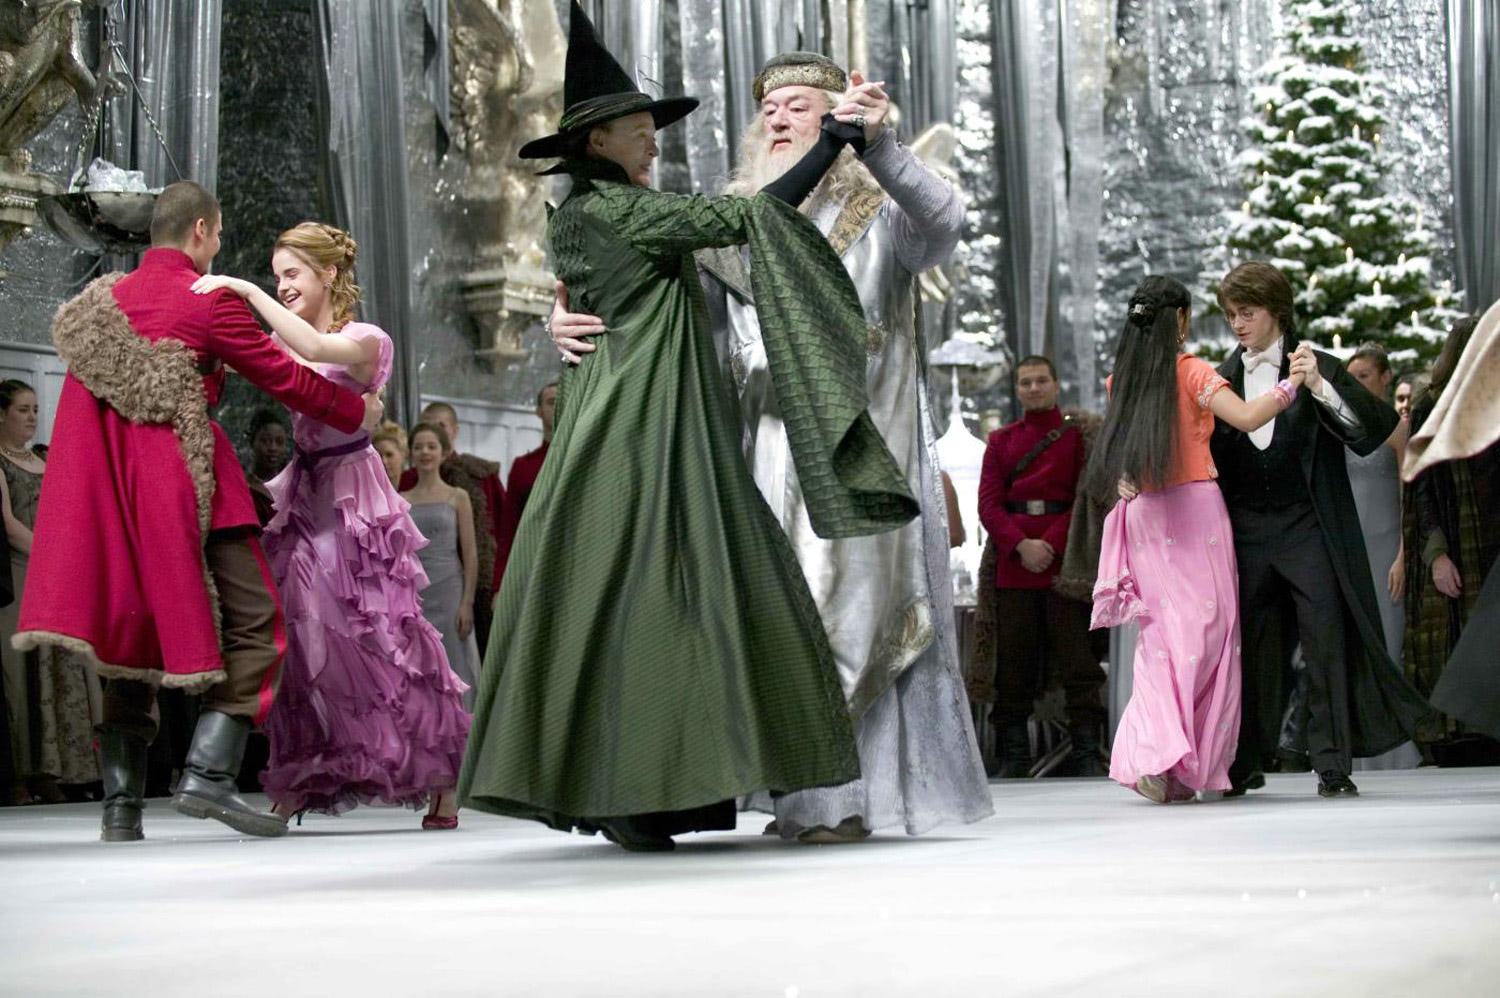 McGonagall and Dumbledore dance